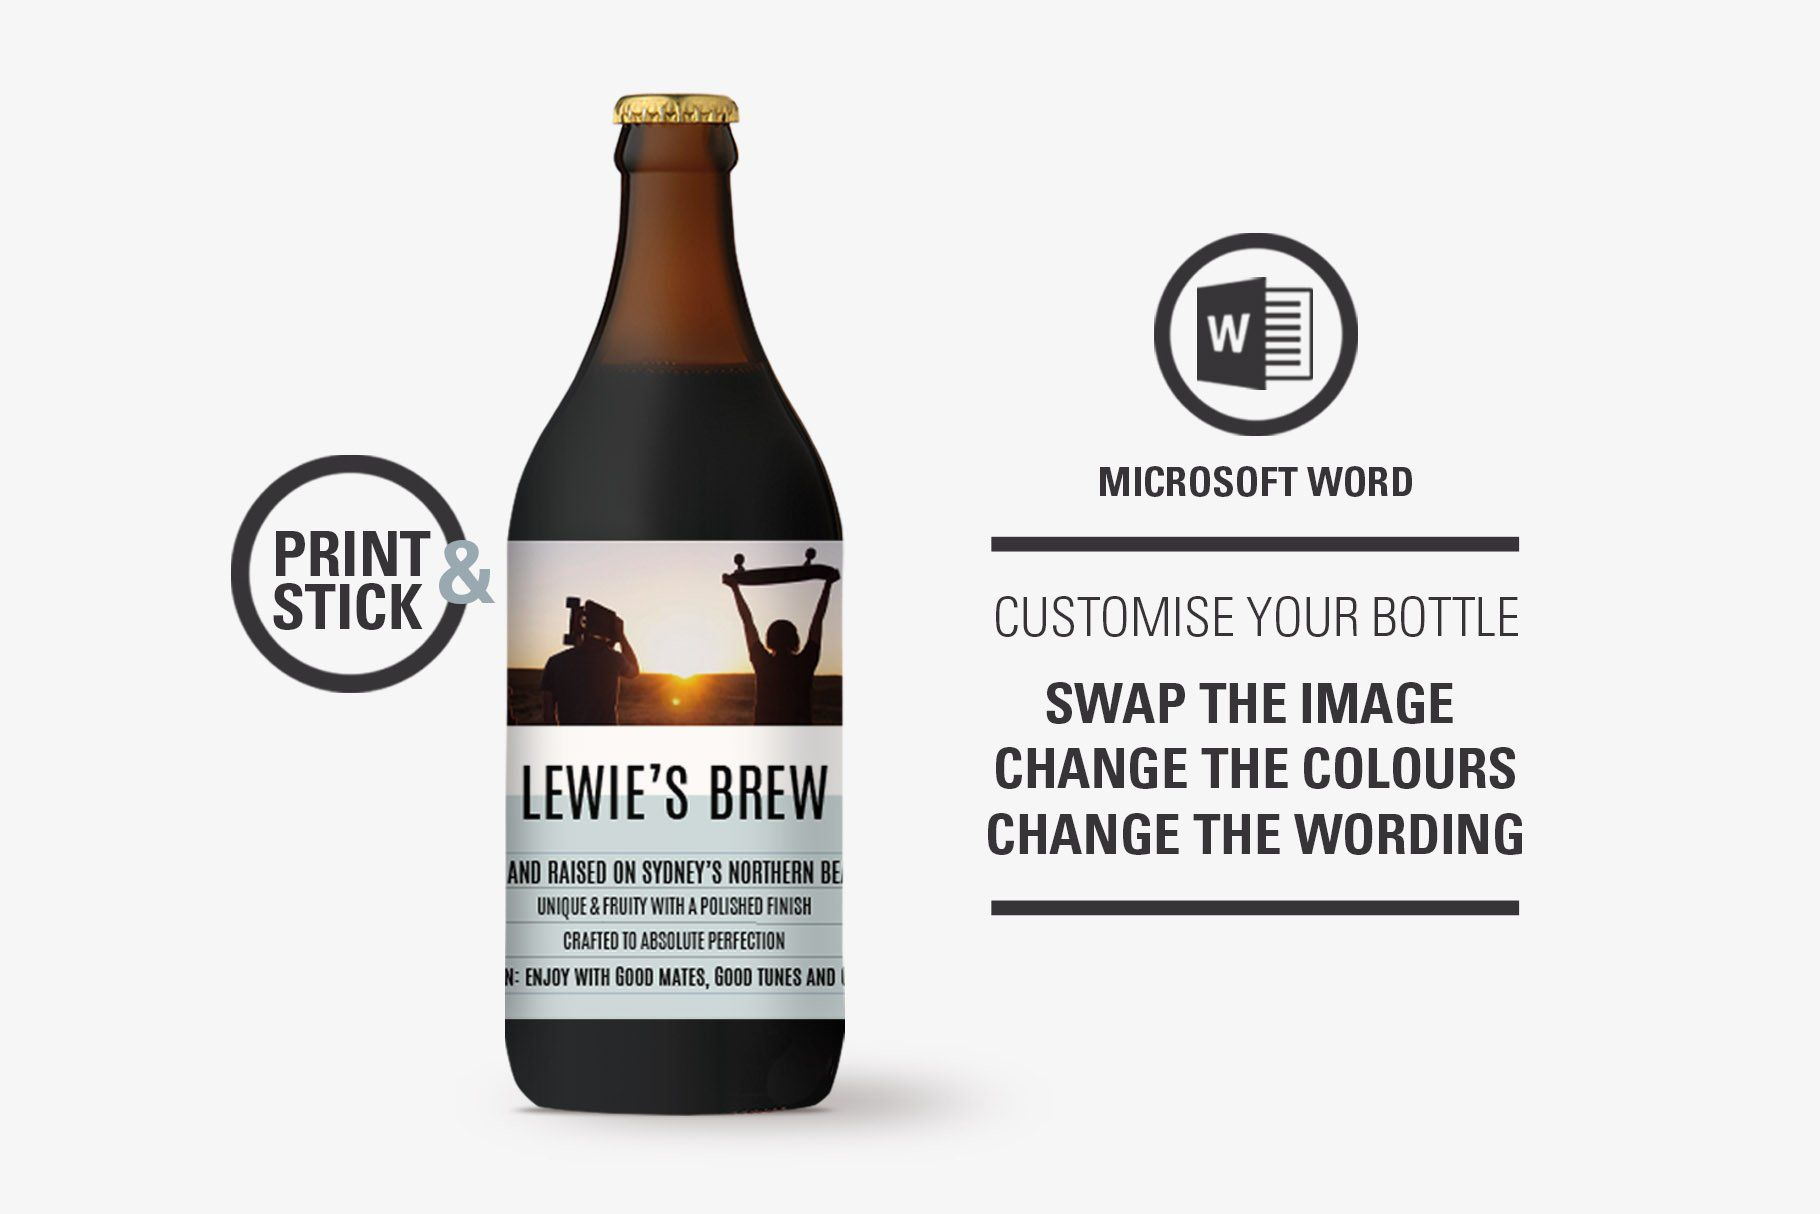 006 Stupendou Microsoft Word Beer Bottle Label Template Photo Full